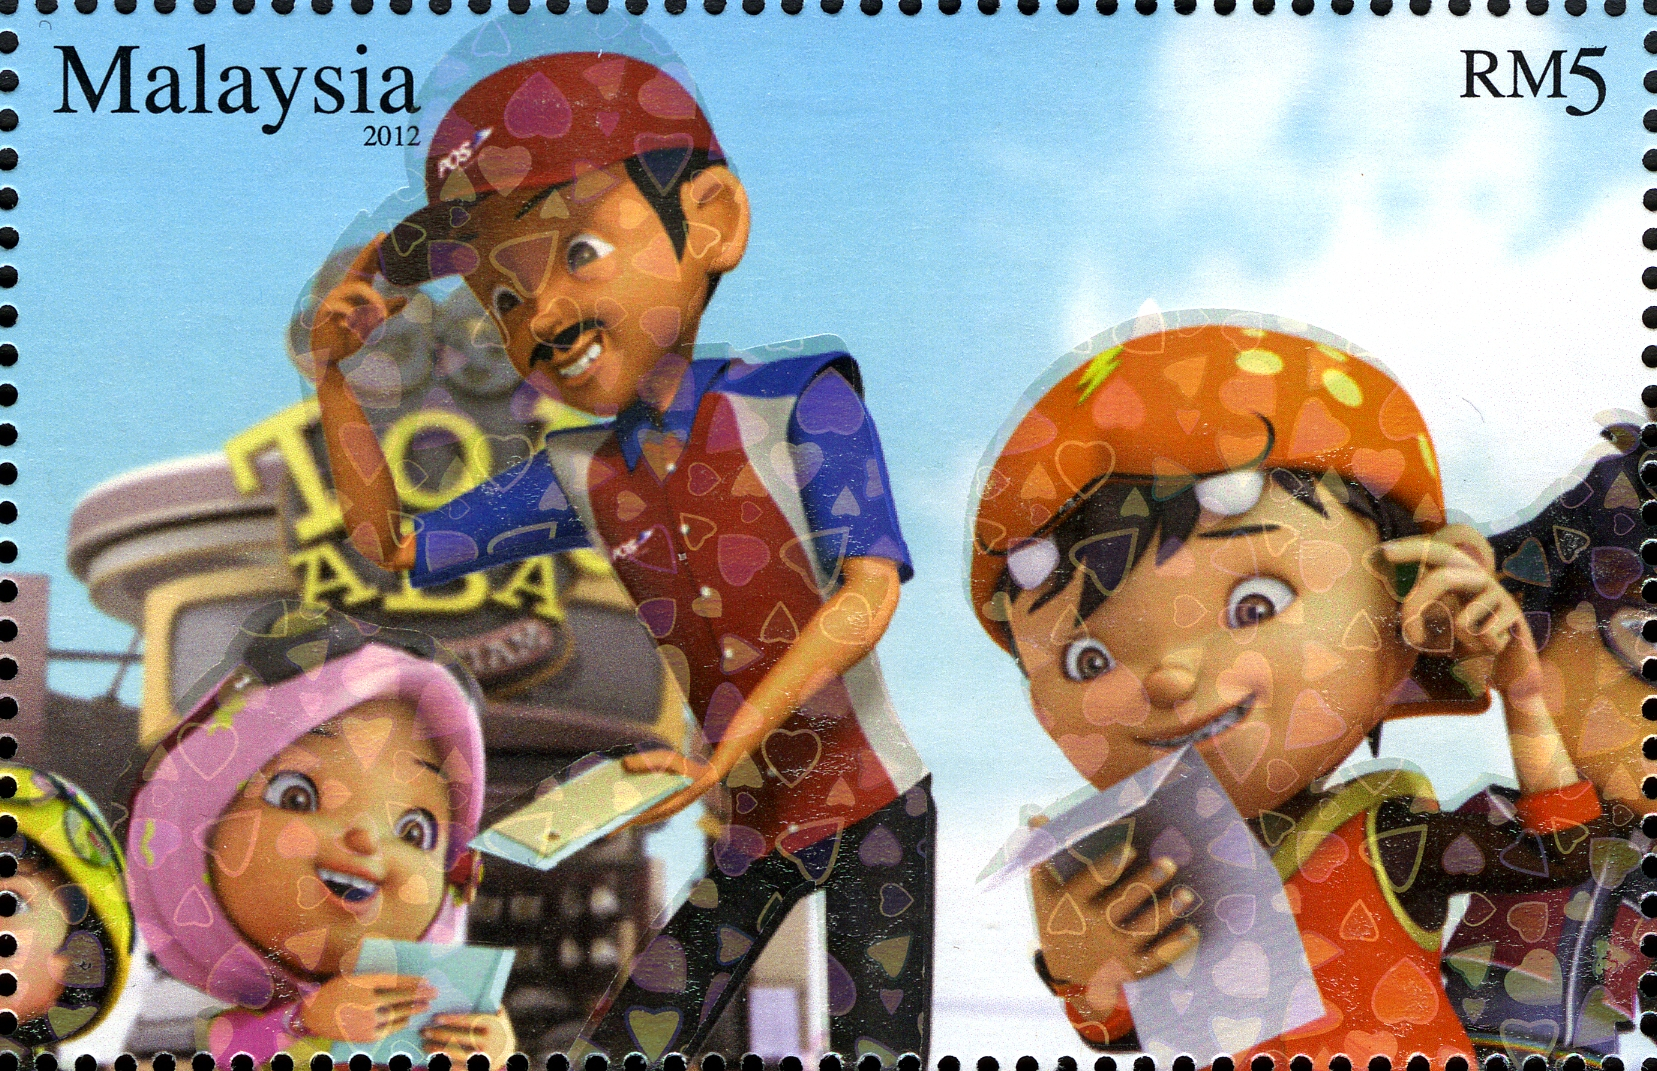 Malaysia - Michel #164a (2012). The large stamp from the souvenir sheet has a three-dimensional element.